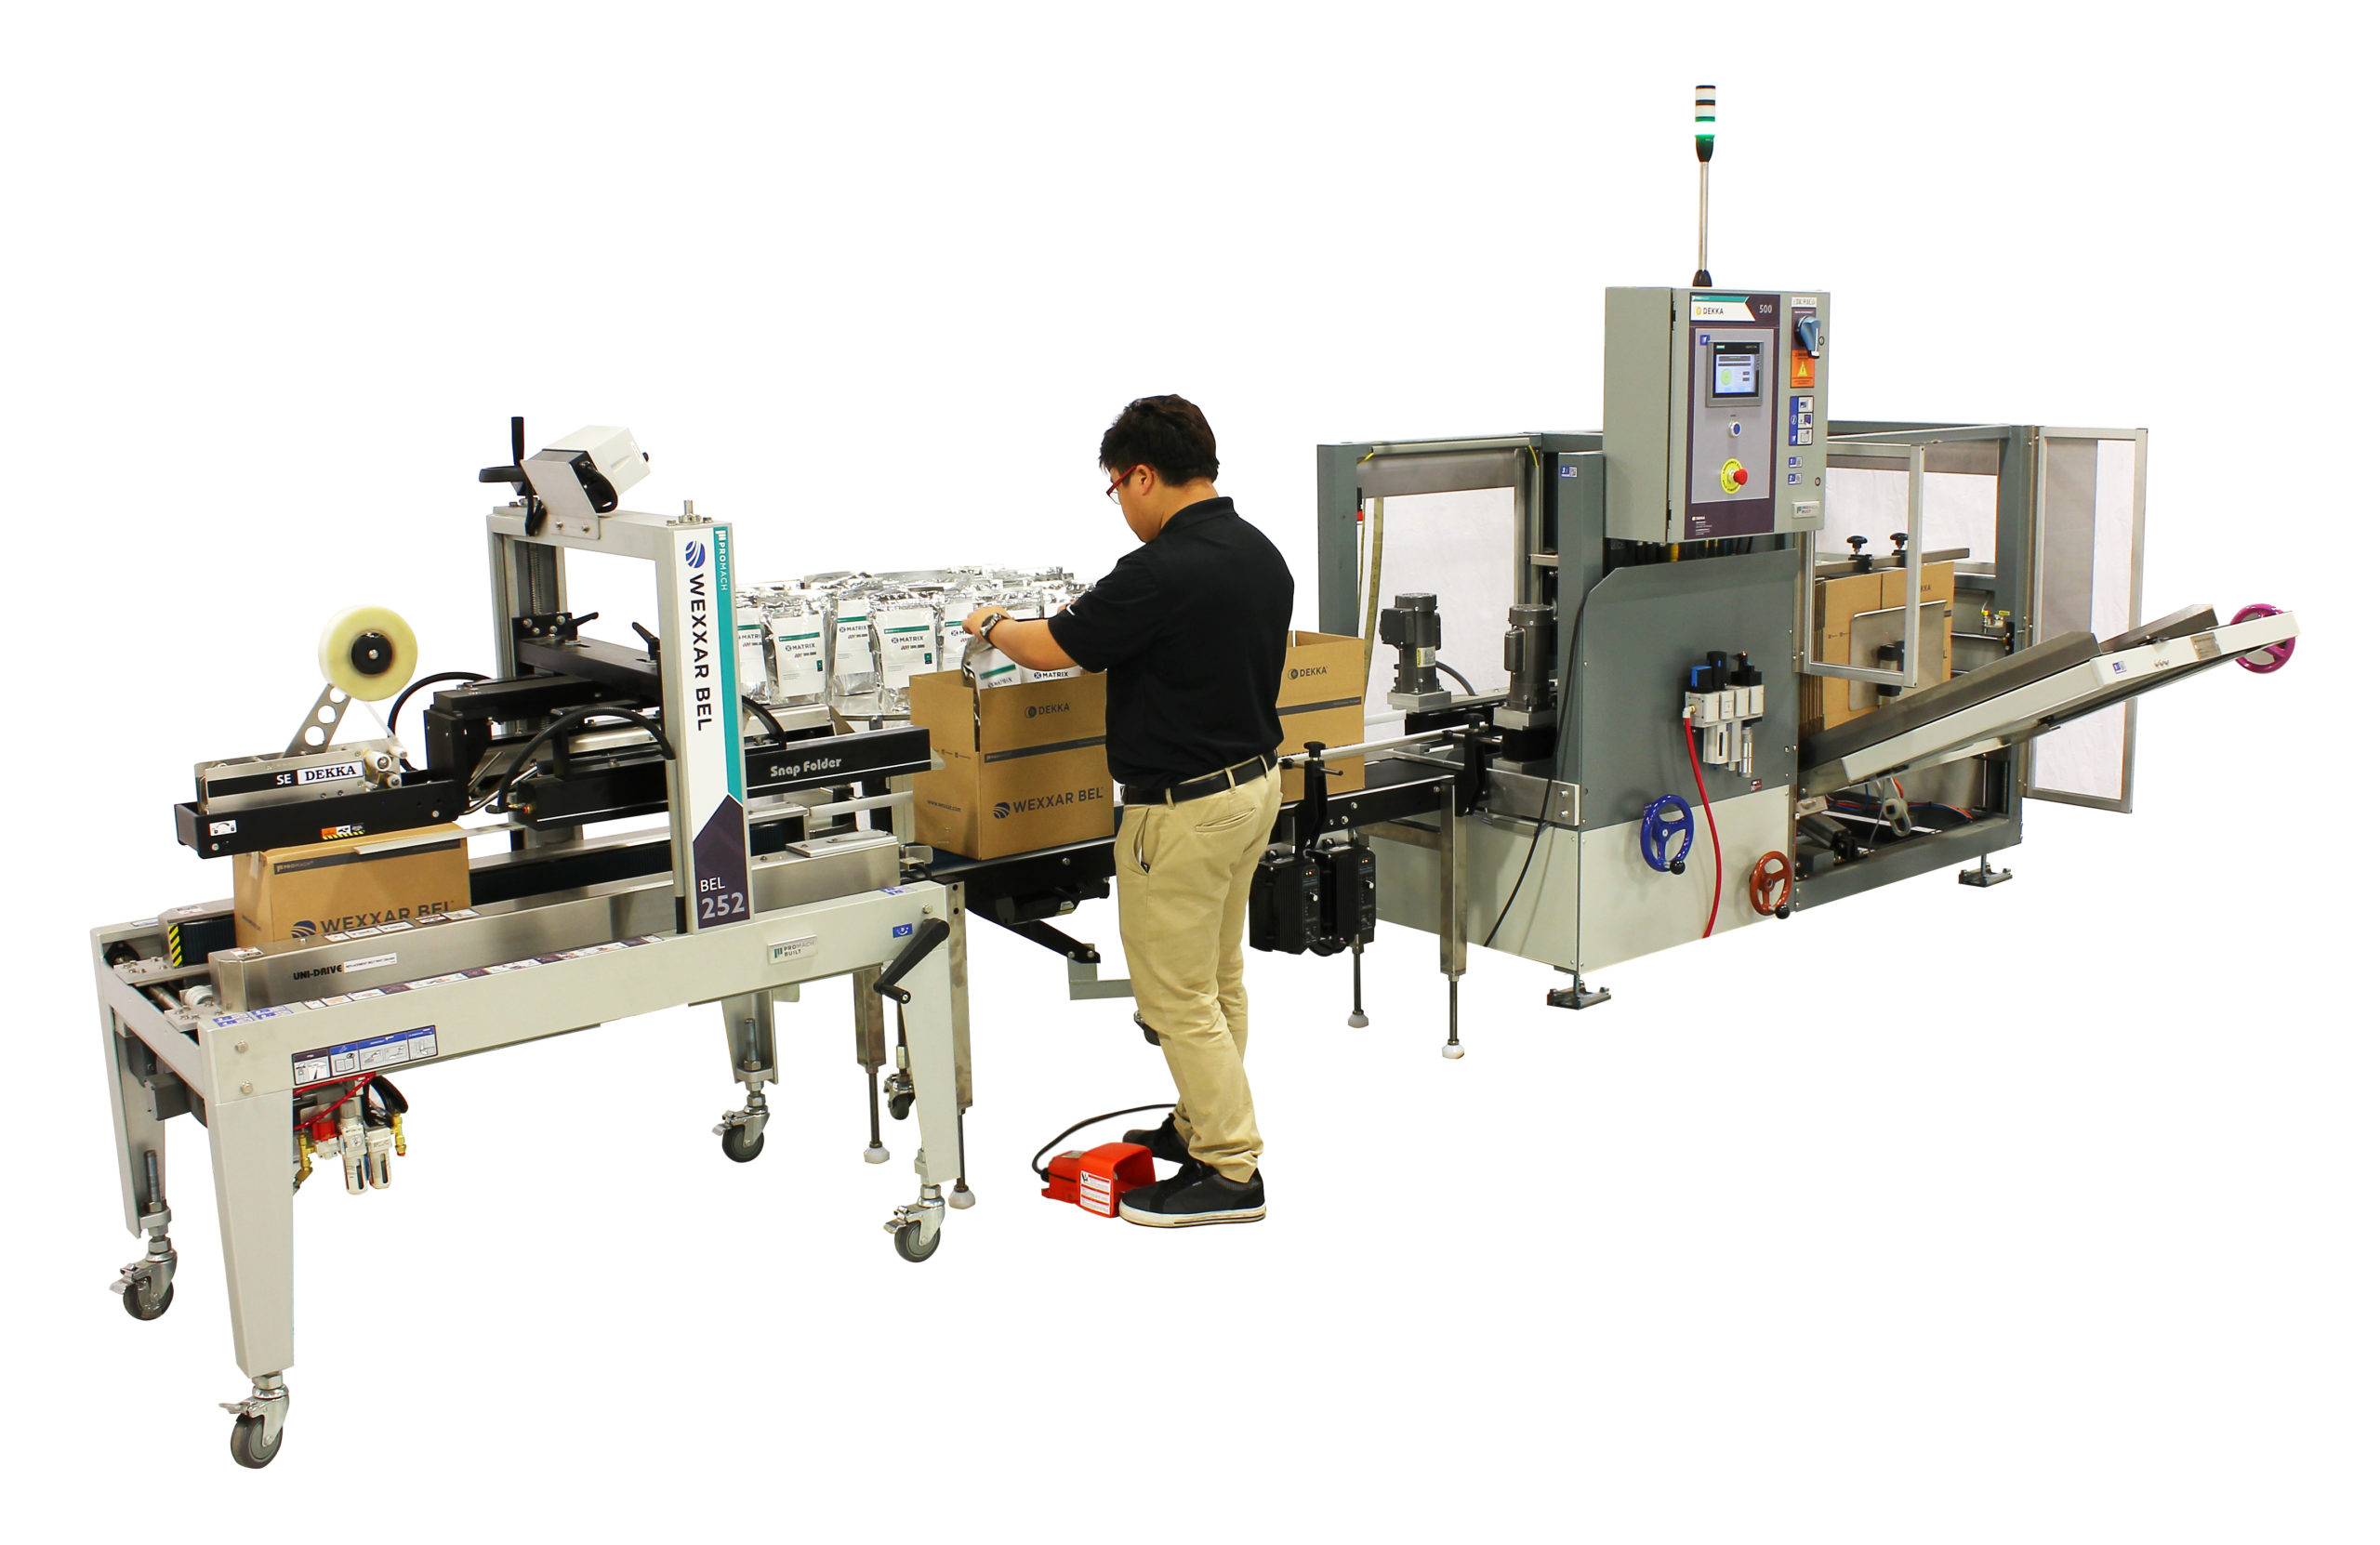 Wexxar Bel Modular Solutions for Packaging Systems